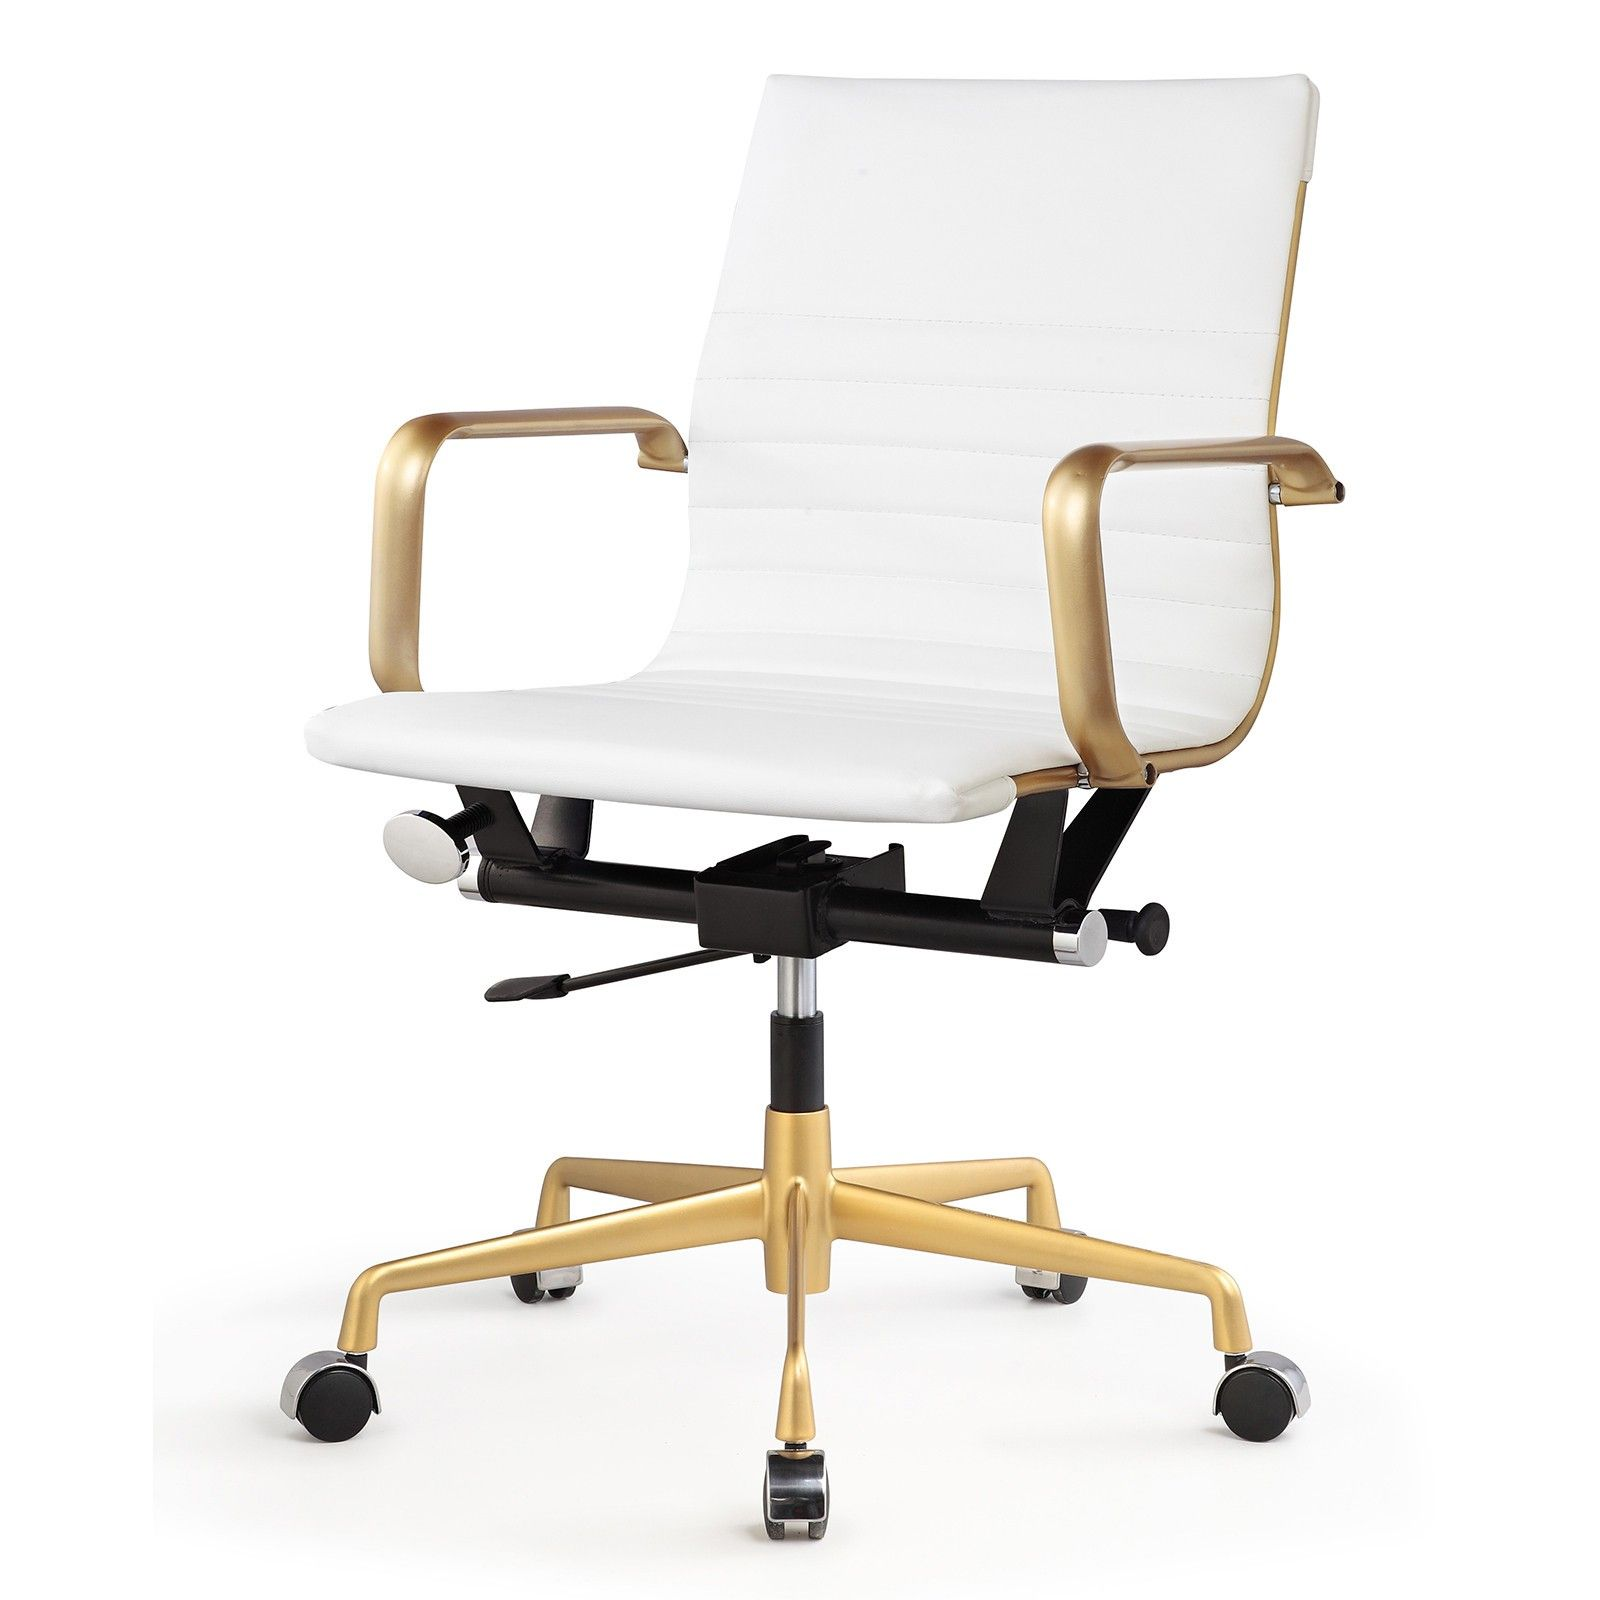 Rachel George White Vegan Leather Gold Office Chair Home Office